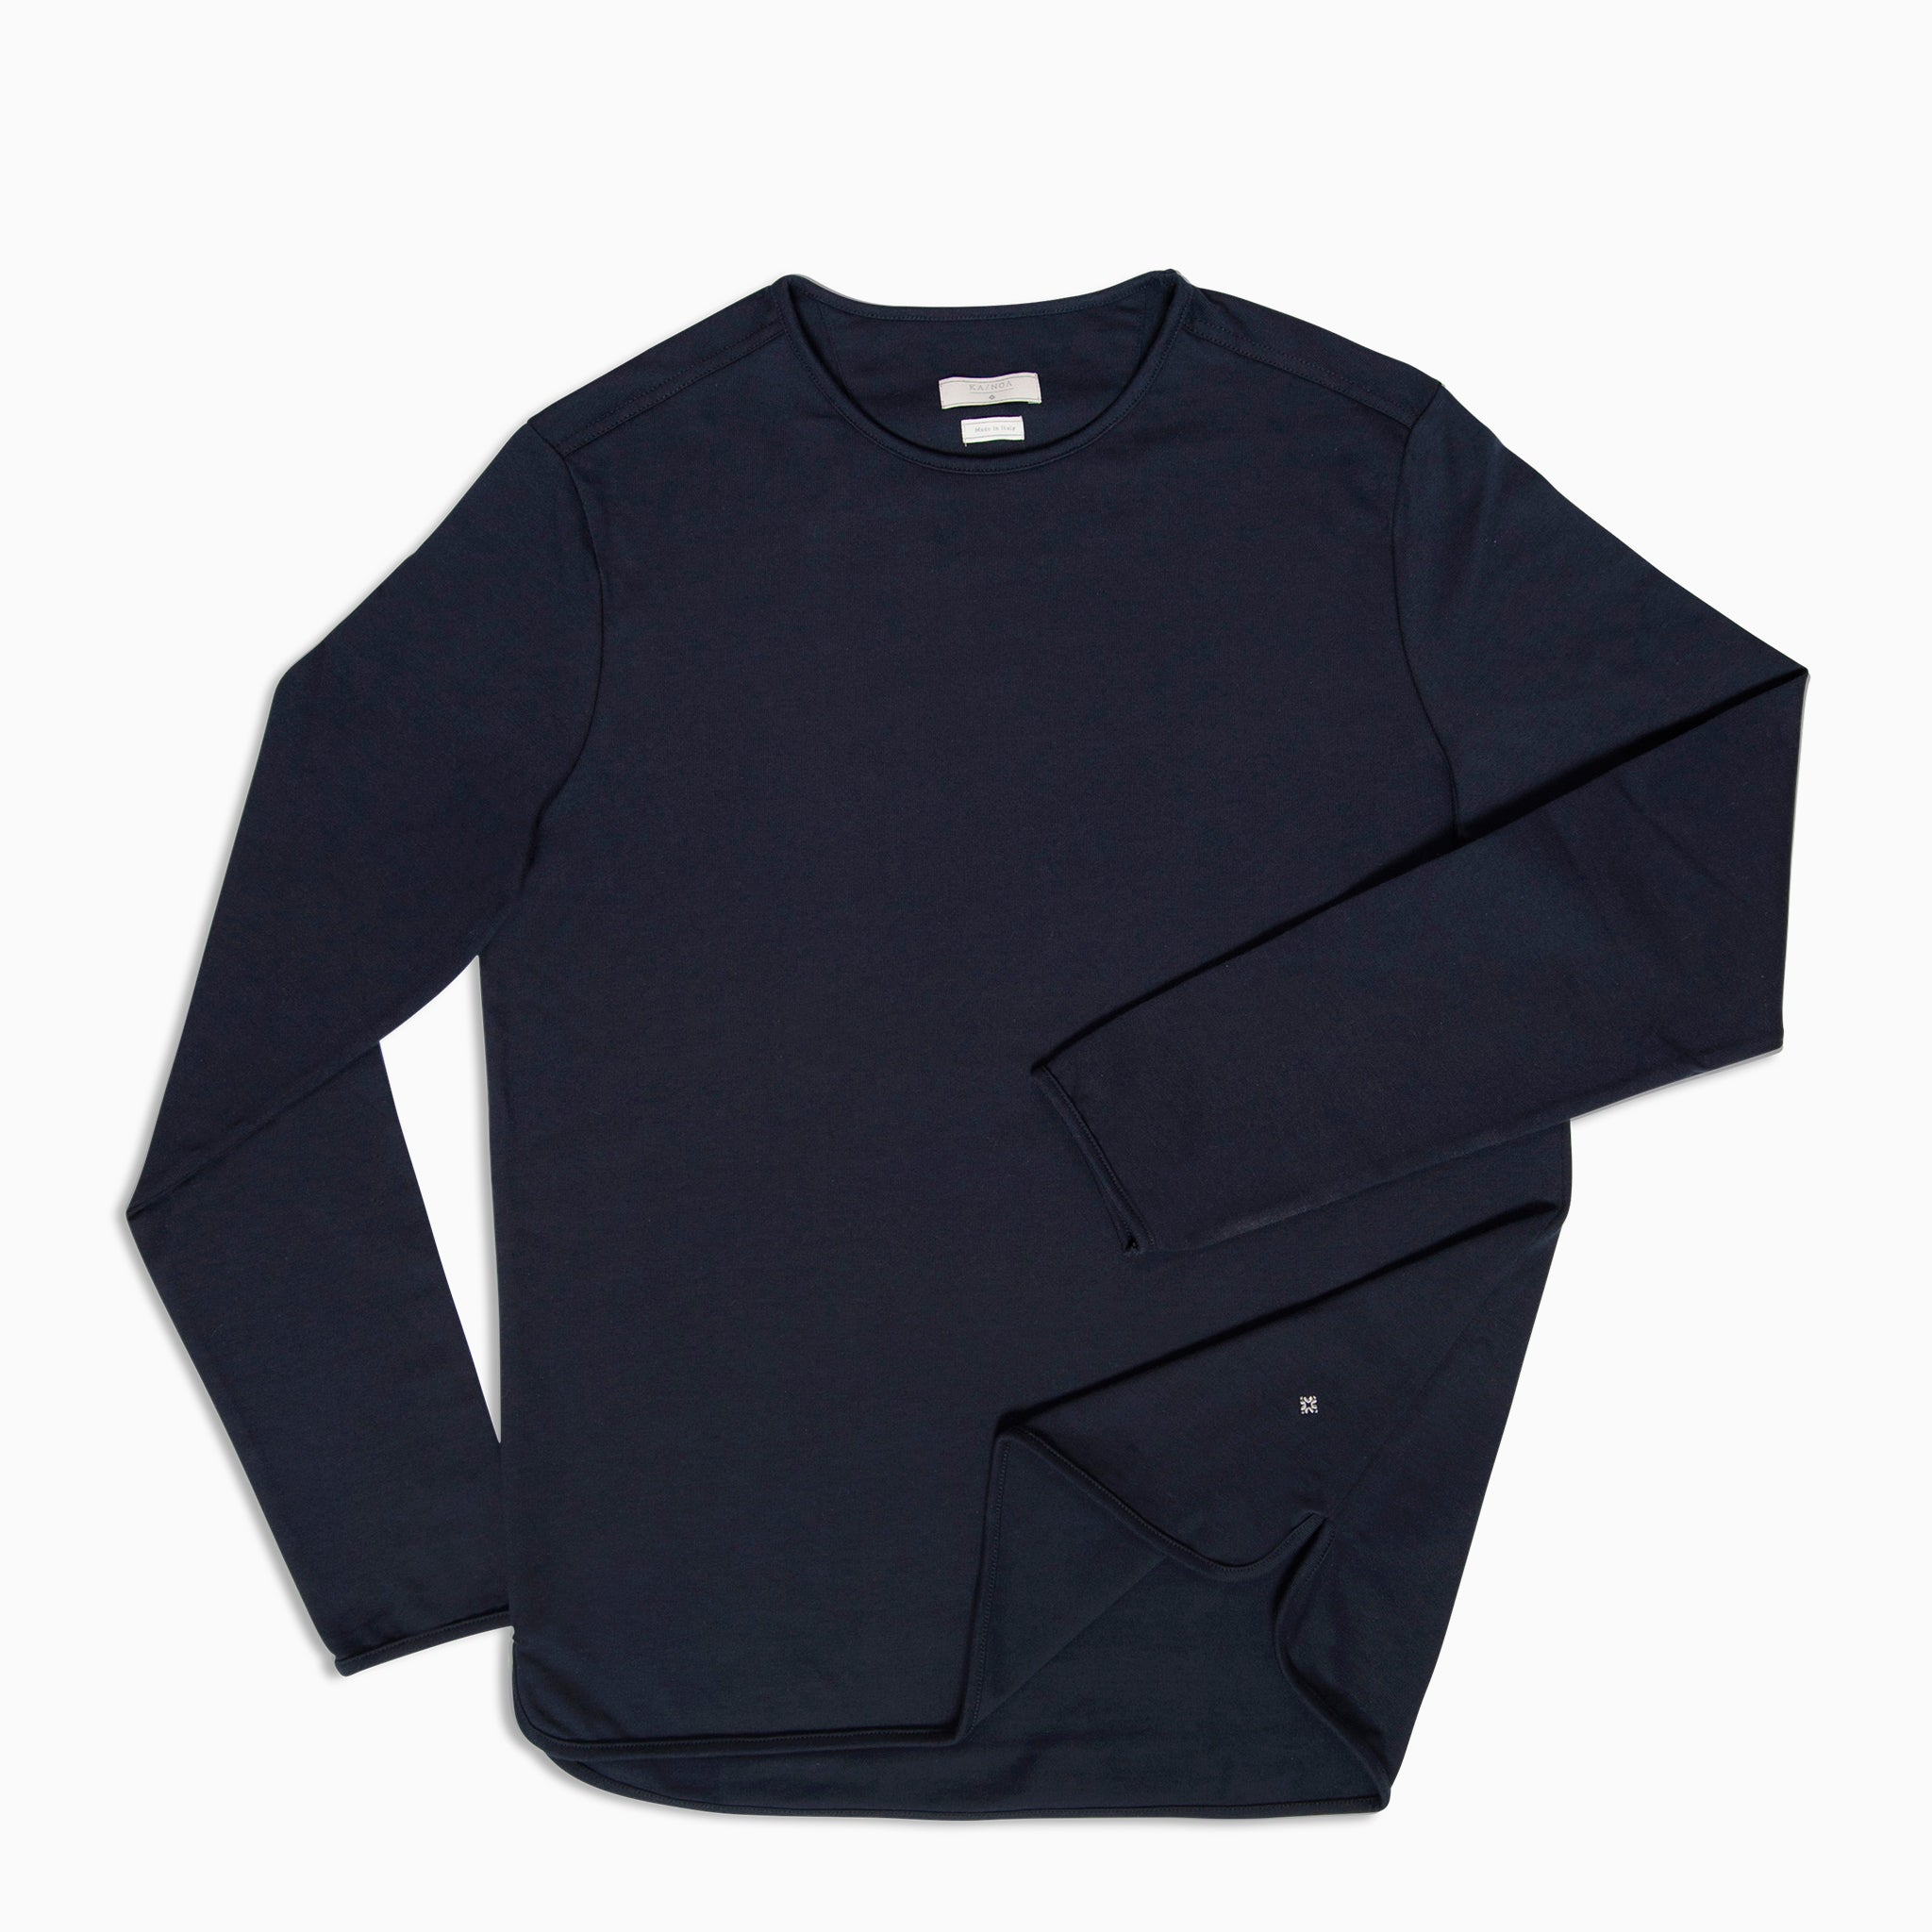 Alaric t-shirt Long Sleeves (Dark Blue)